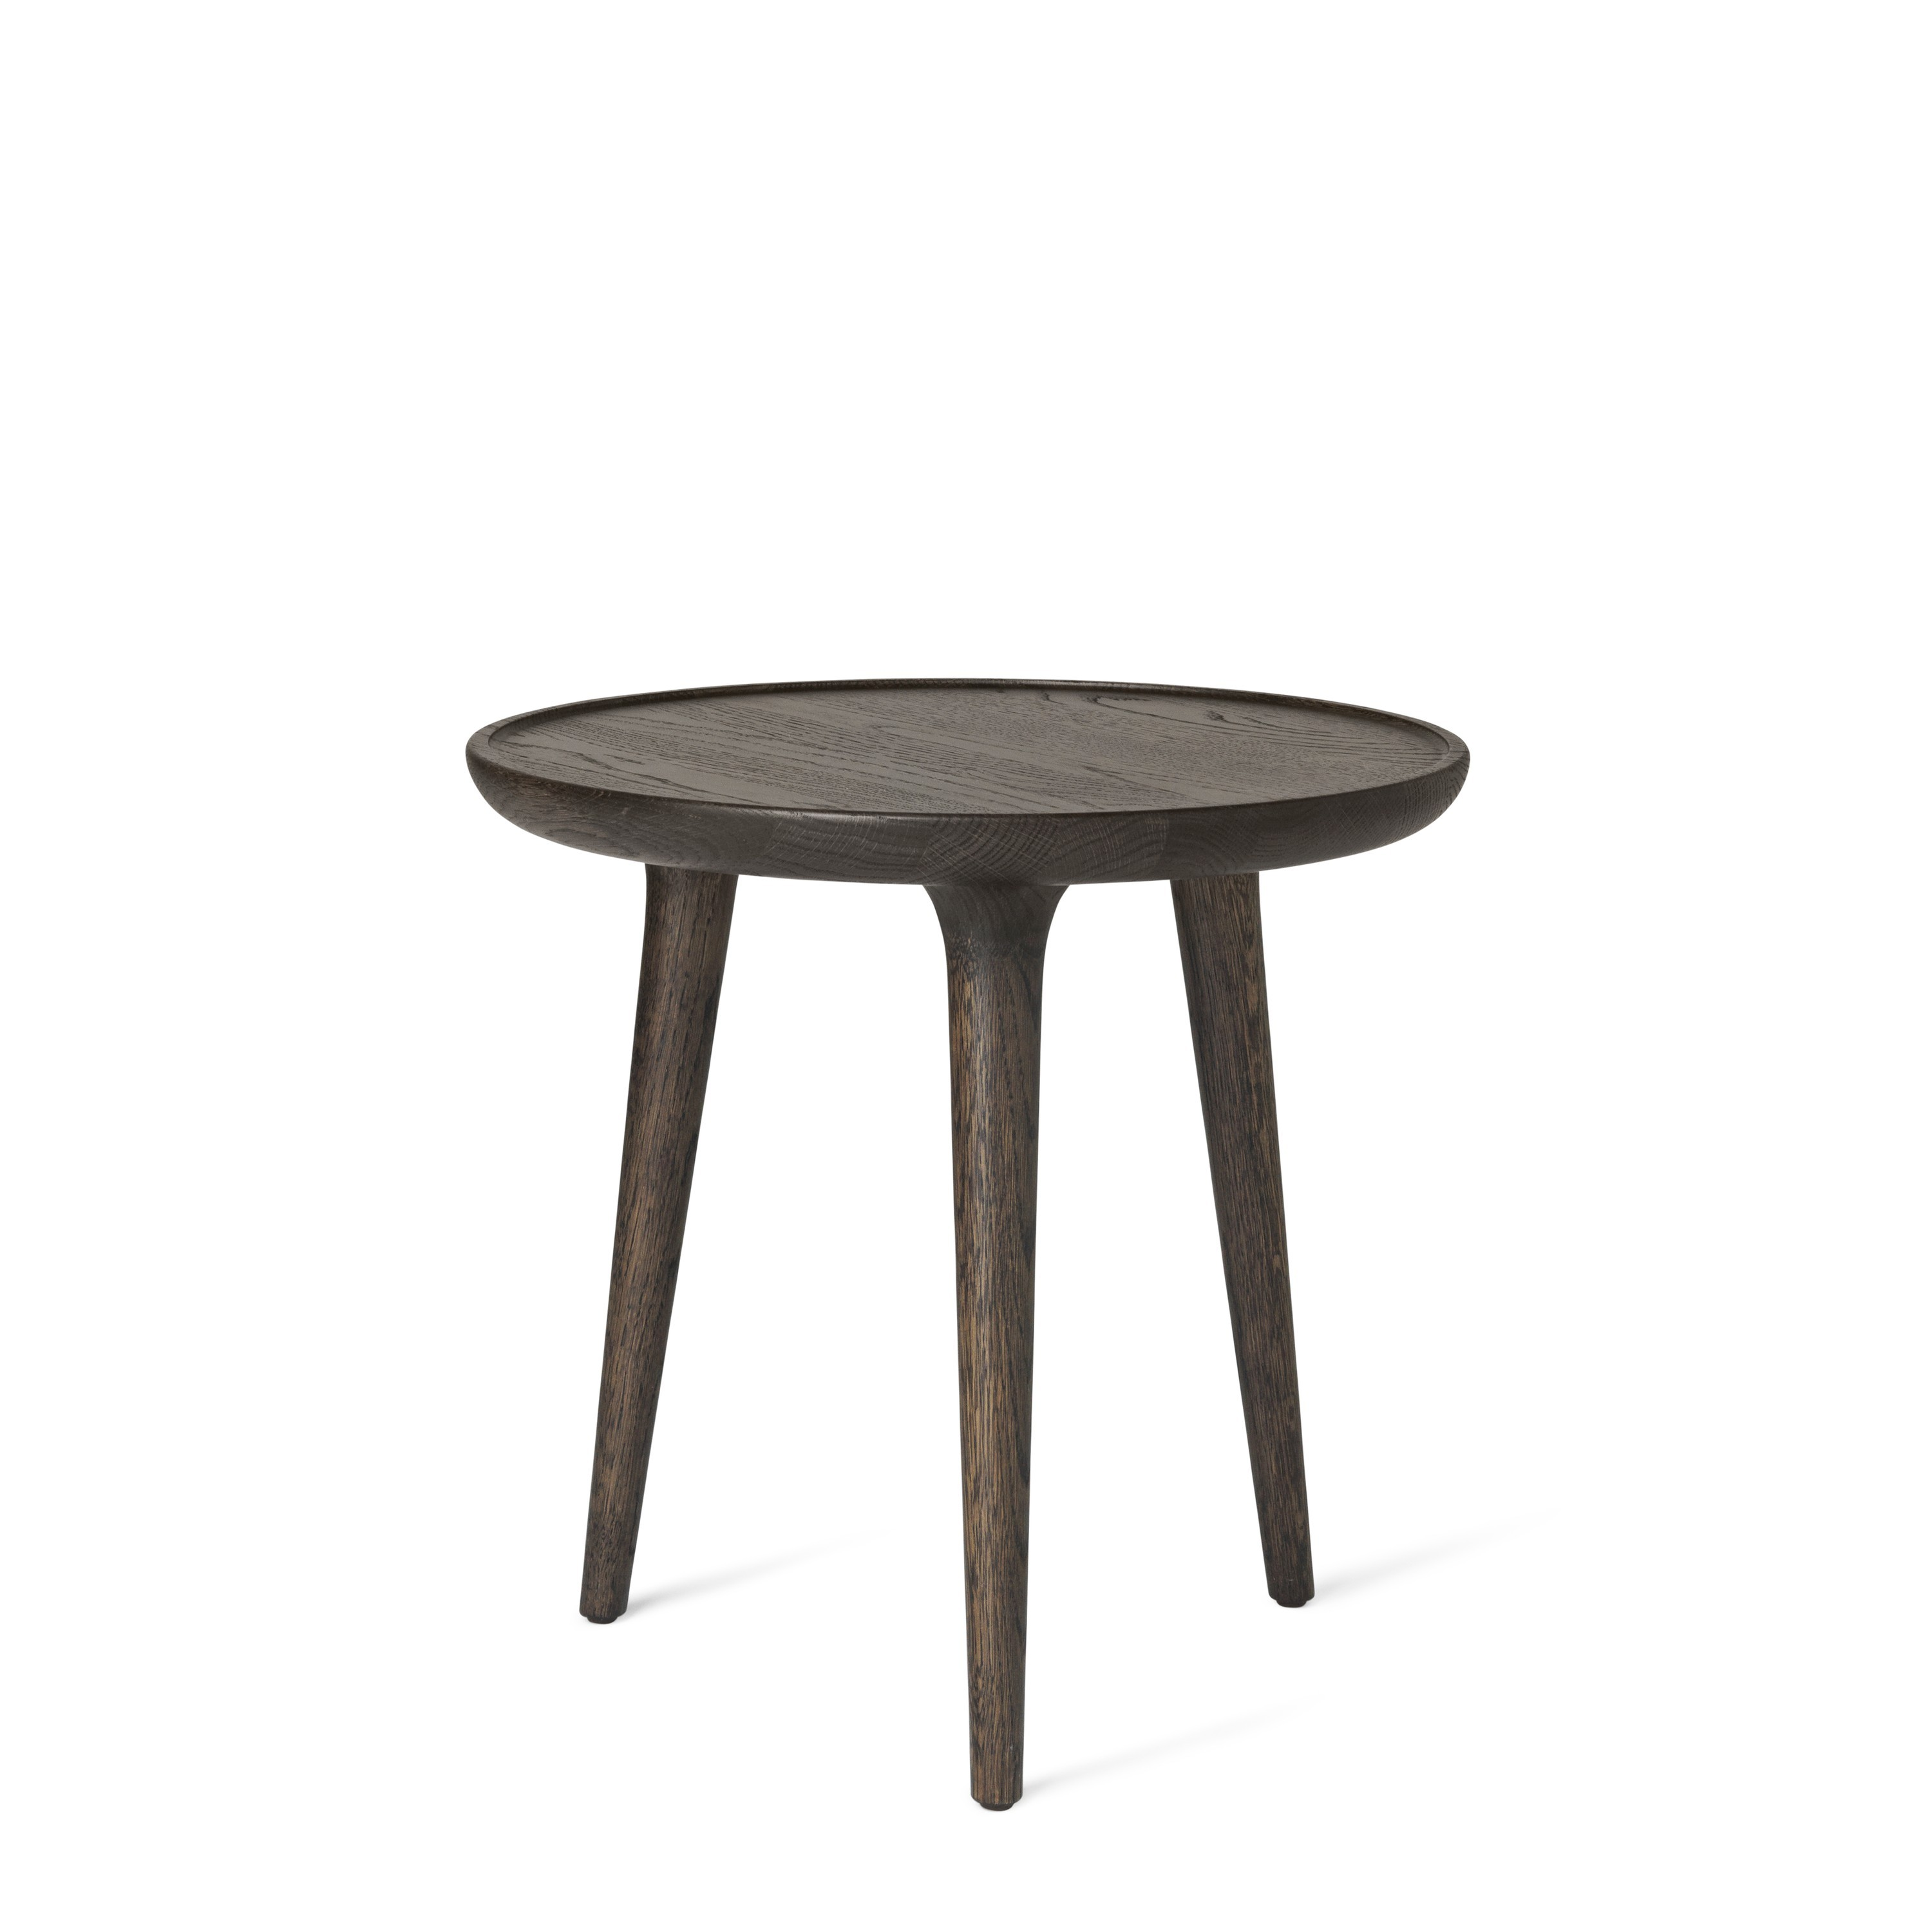 mater accent side table sirka grey oak coffeetable small gray glass nesting tables round covers for bedside pallet coffee ideas outdoor grill island magnussen console mid century